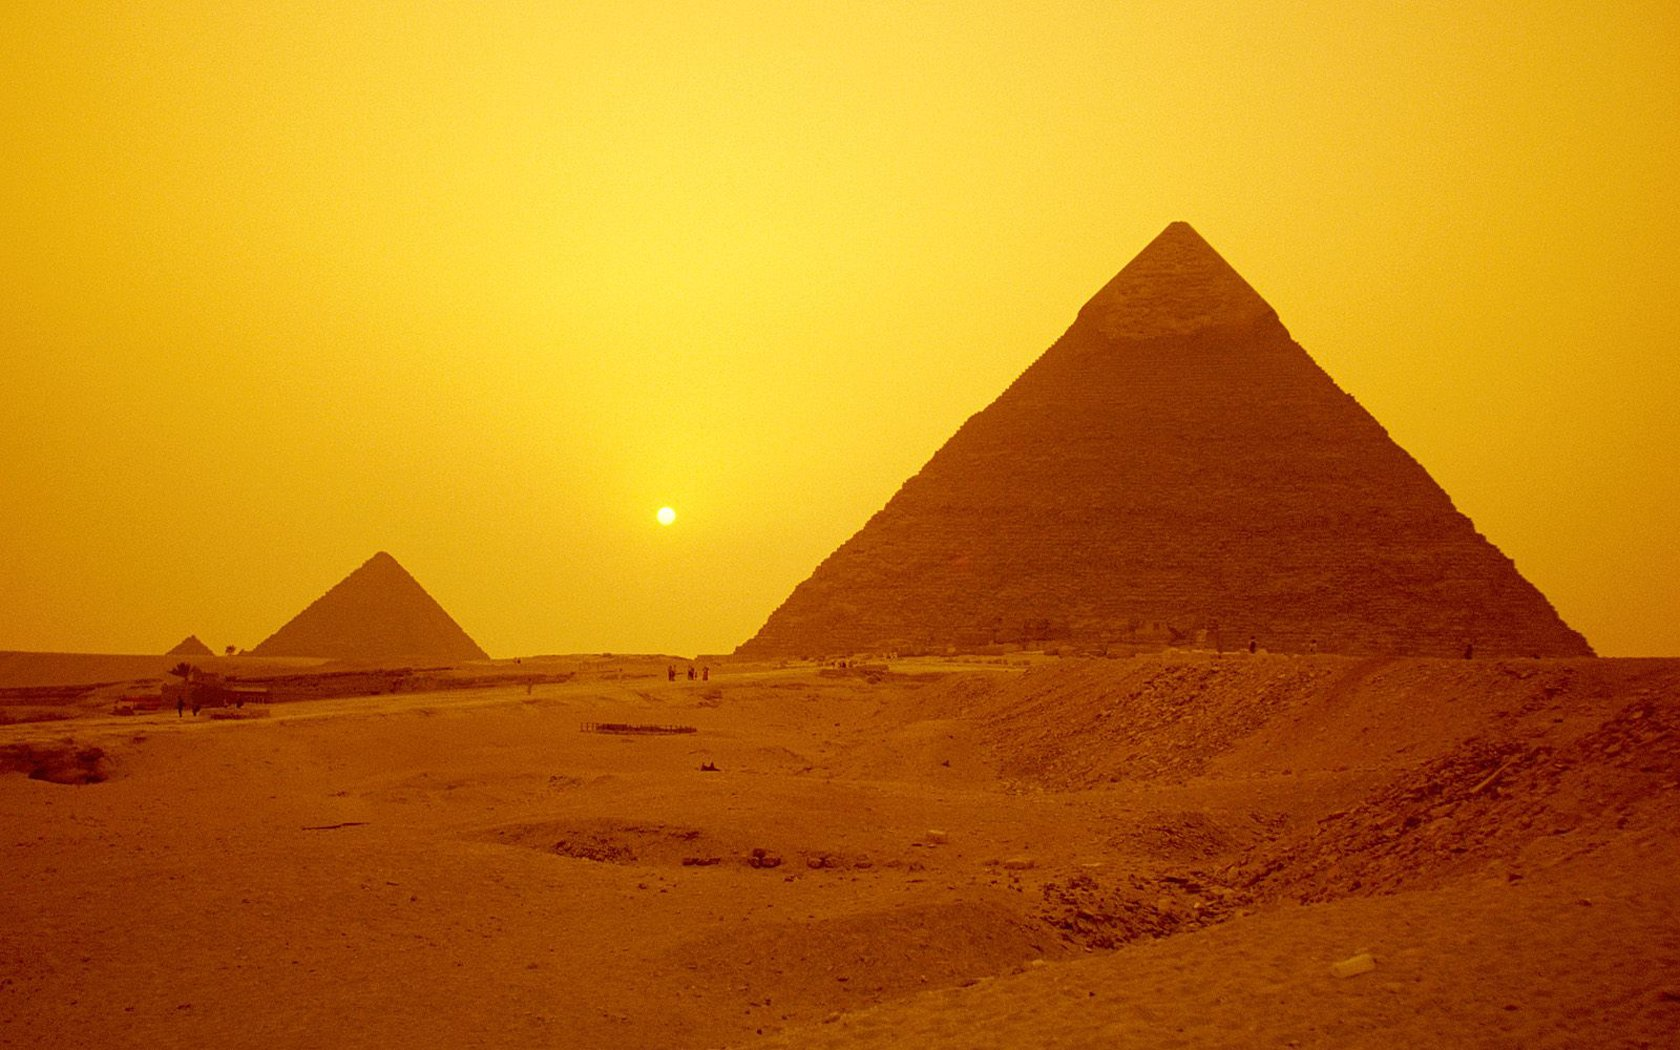 Egypt wallpapers | Egypt background - Page 9